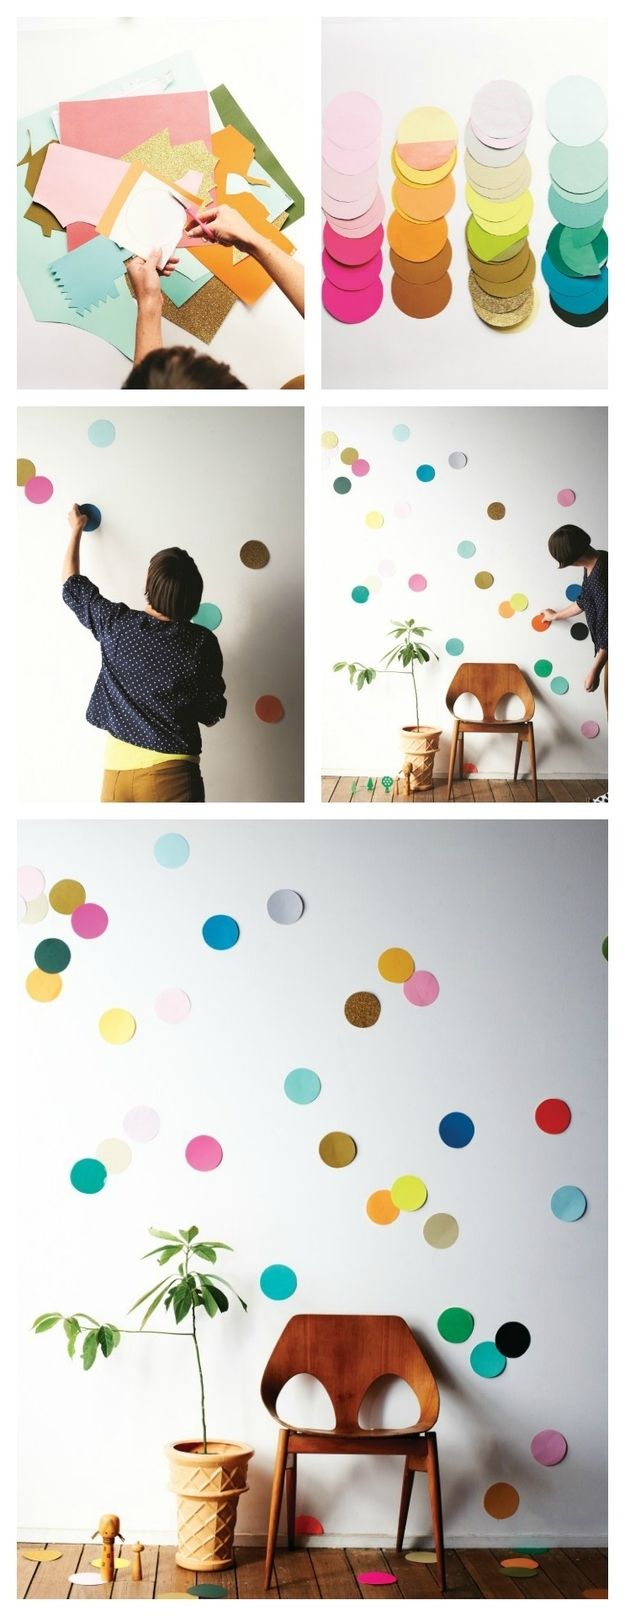 Sticking dots on the wall